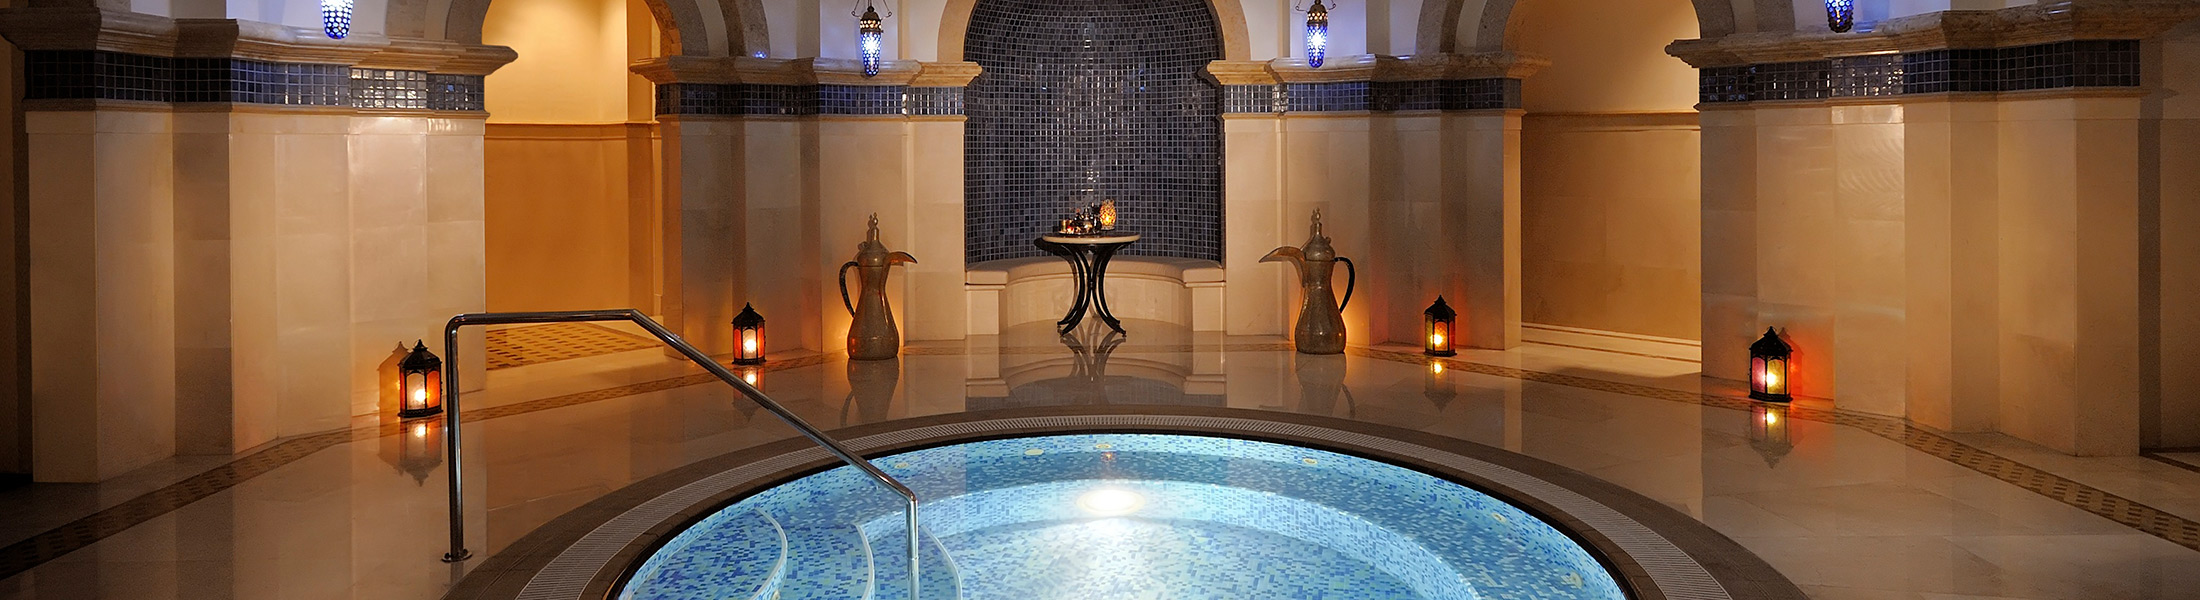 Hammam at Arabian Court One&Only Royal Mirage